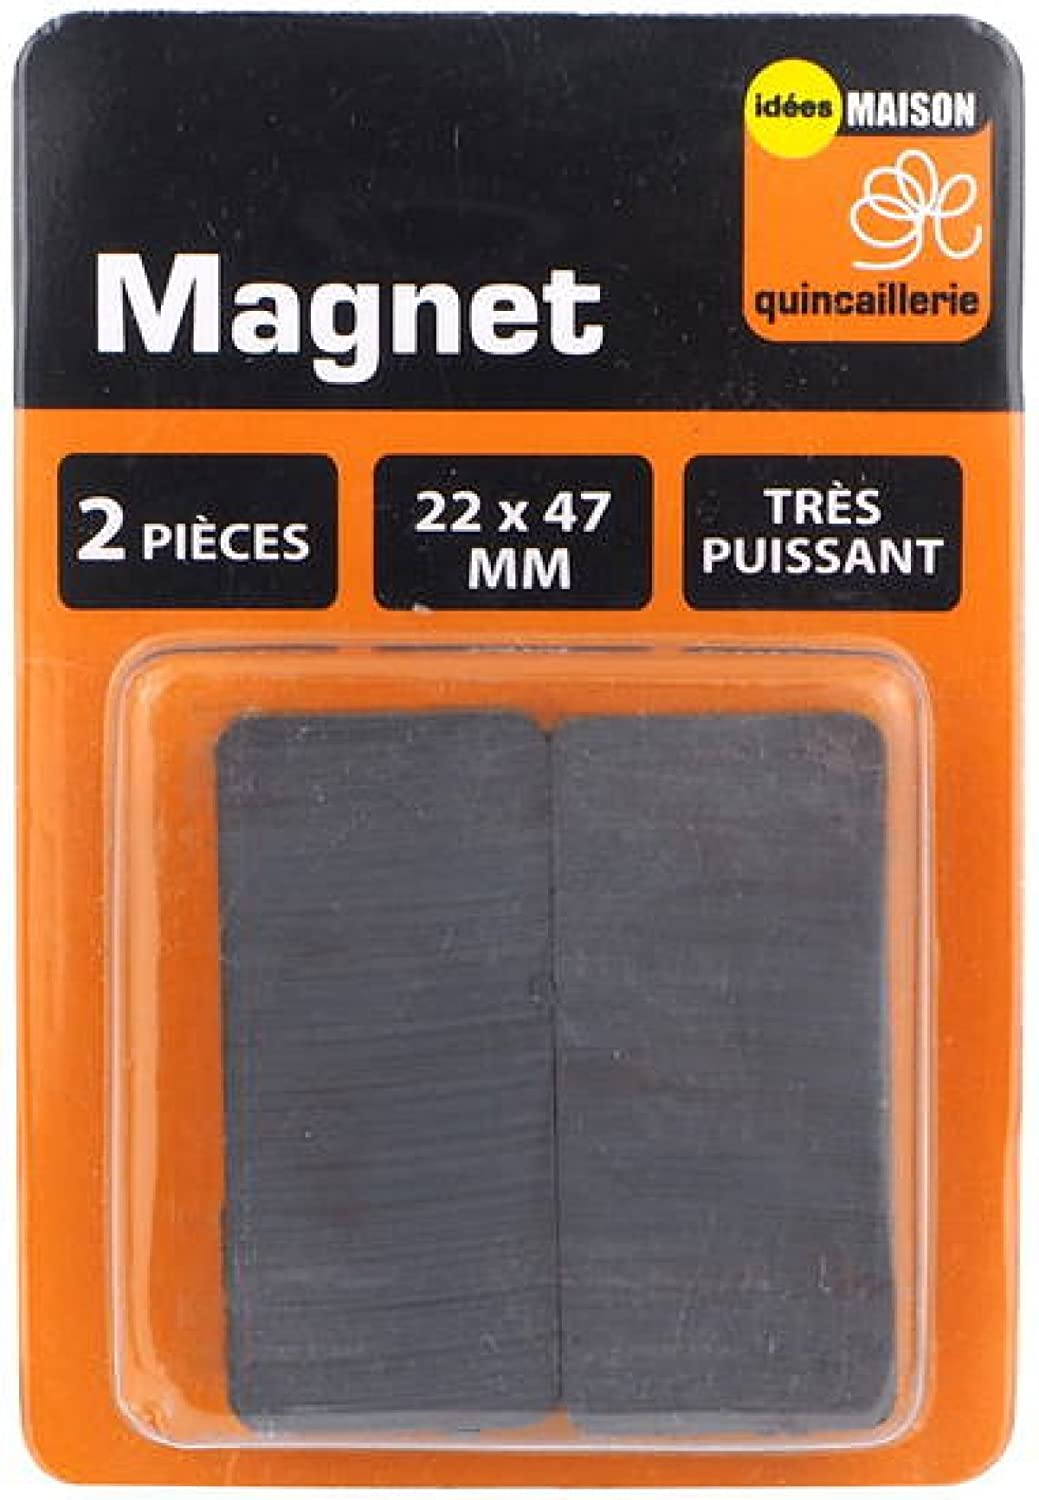 Les 2 aimants magnets ferrite permanents trè s puissants IDEES MAISON